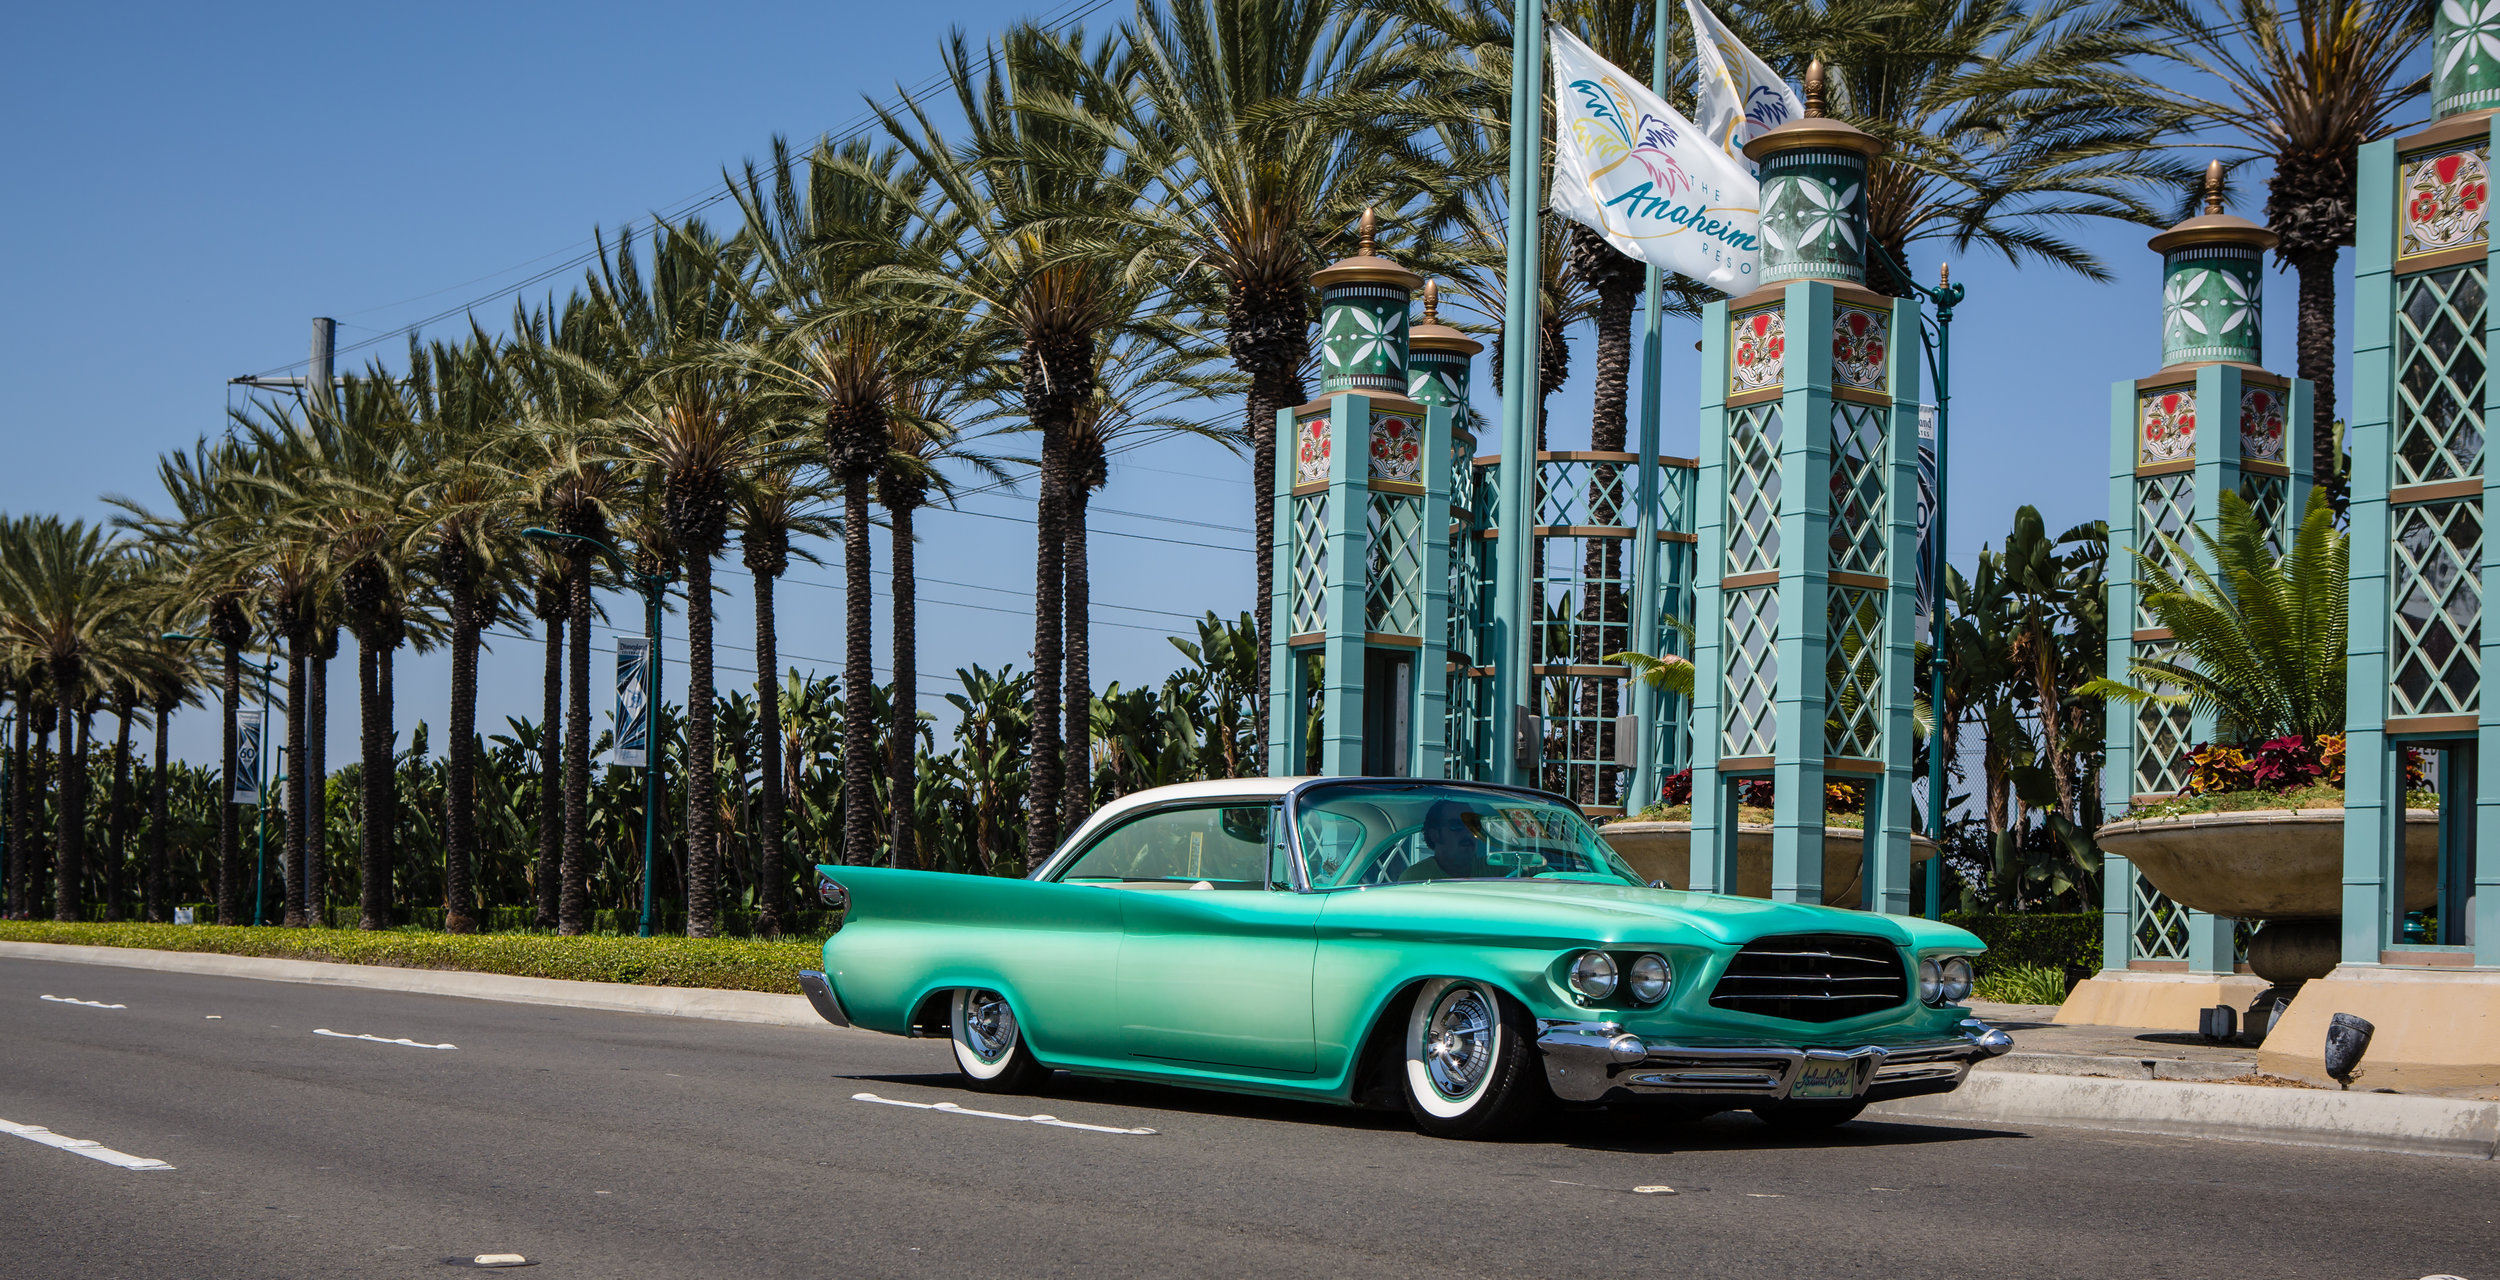 Anaheim Rod and Custom 1960 Desoto Island Girl_-21.jpg